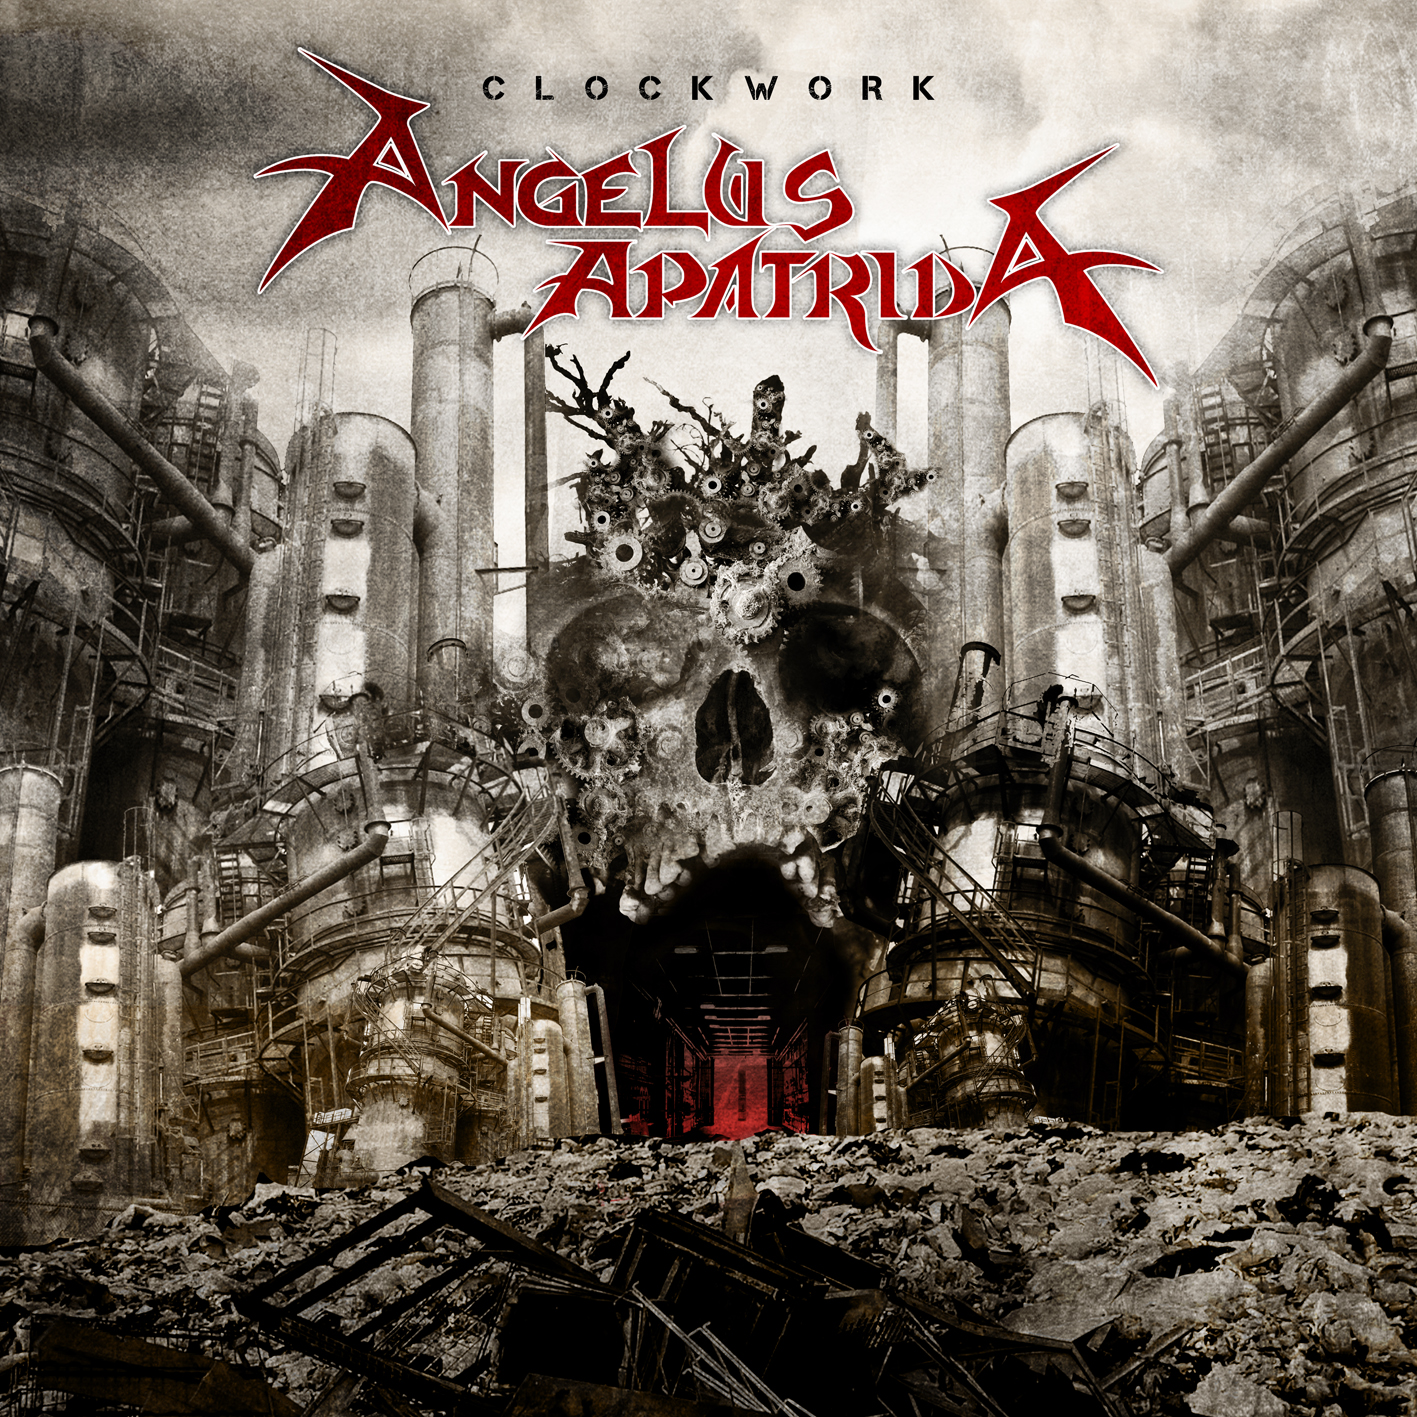 Angelus Apatrida – Clockwork Review